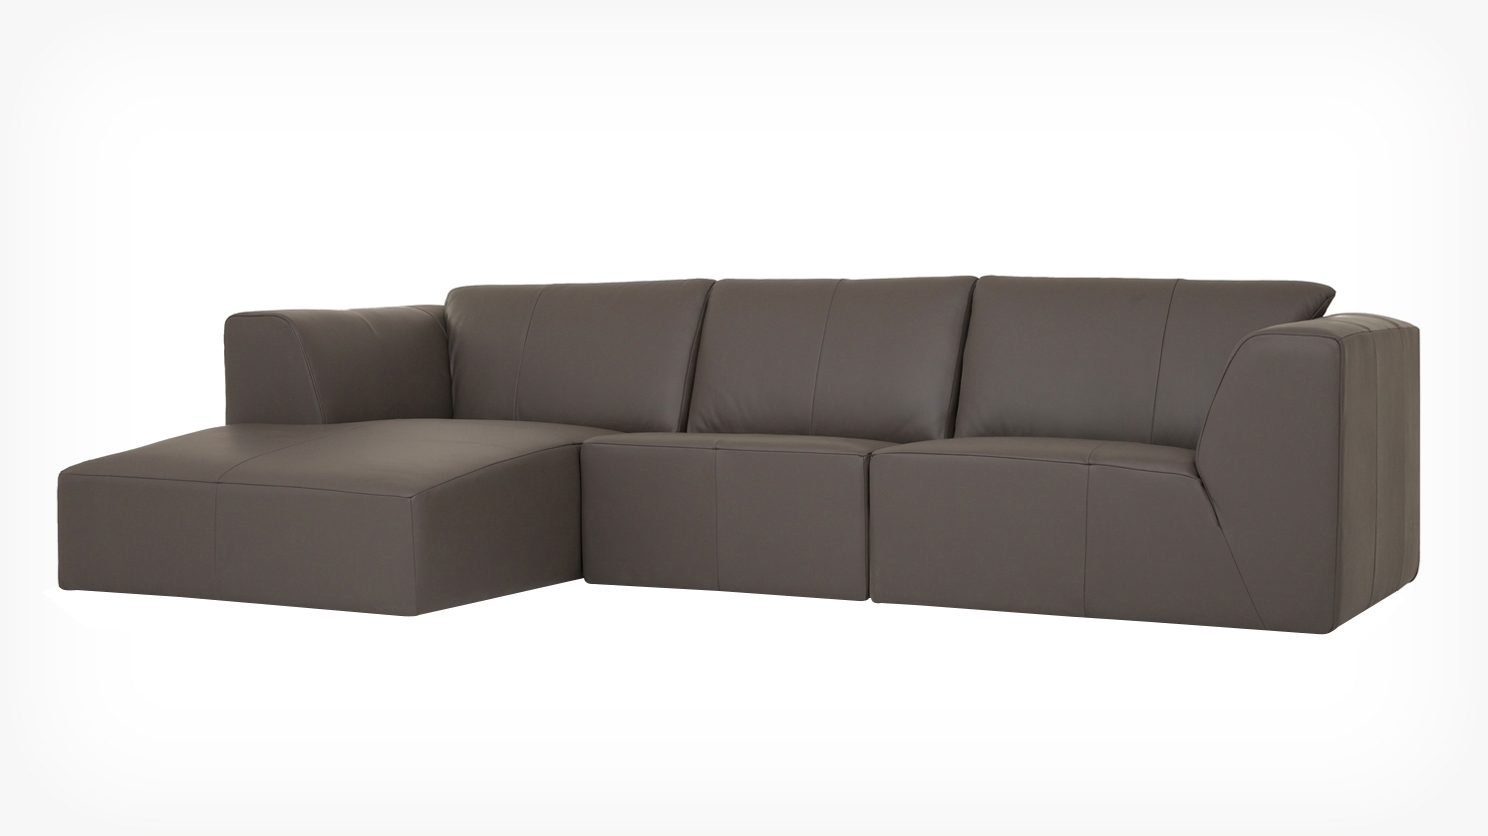 Morten 3 Piece Sectional Sofa With Chaise – Leather (View 7 of 20)